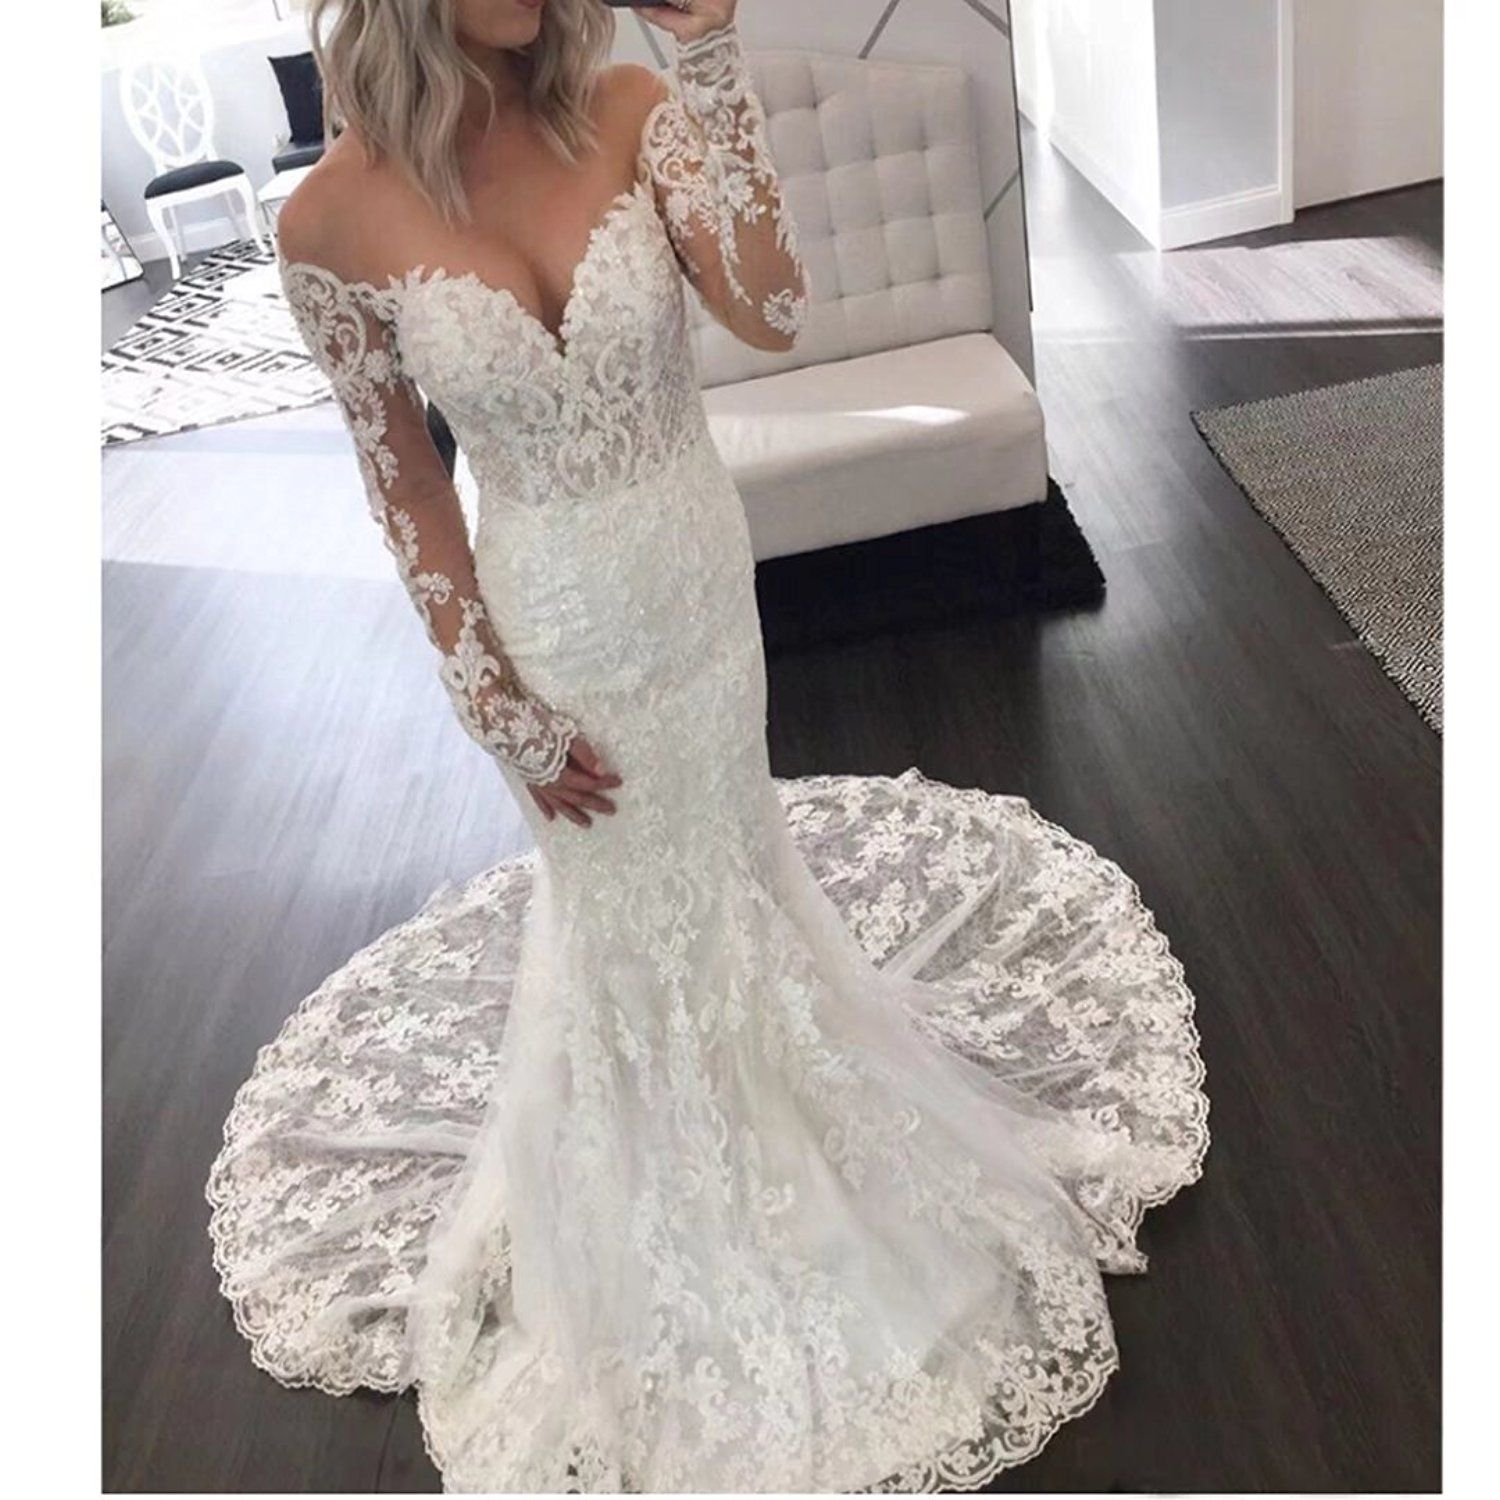 Dingdingmail Illusion Long Sleeve Lace Mermaid Wedding Dr Long Sleeve Wedding Dress Lace Long Sleeve Wedding Dress Lace Mermaid Lace Wedding Dress With Sleeves,Pretty Black Dresses For A Wedding